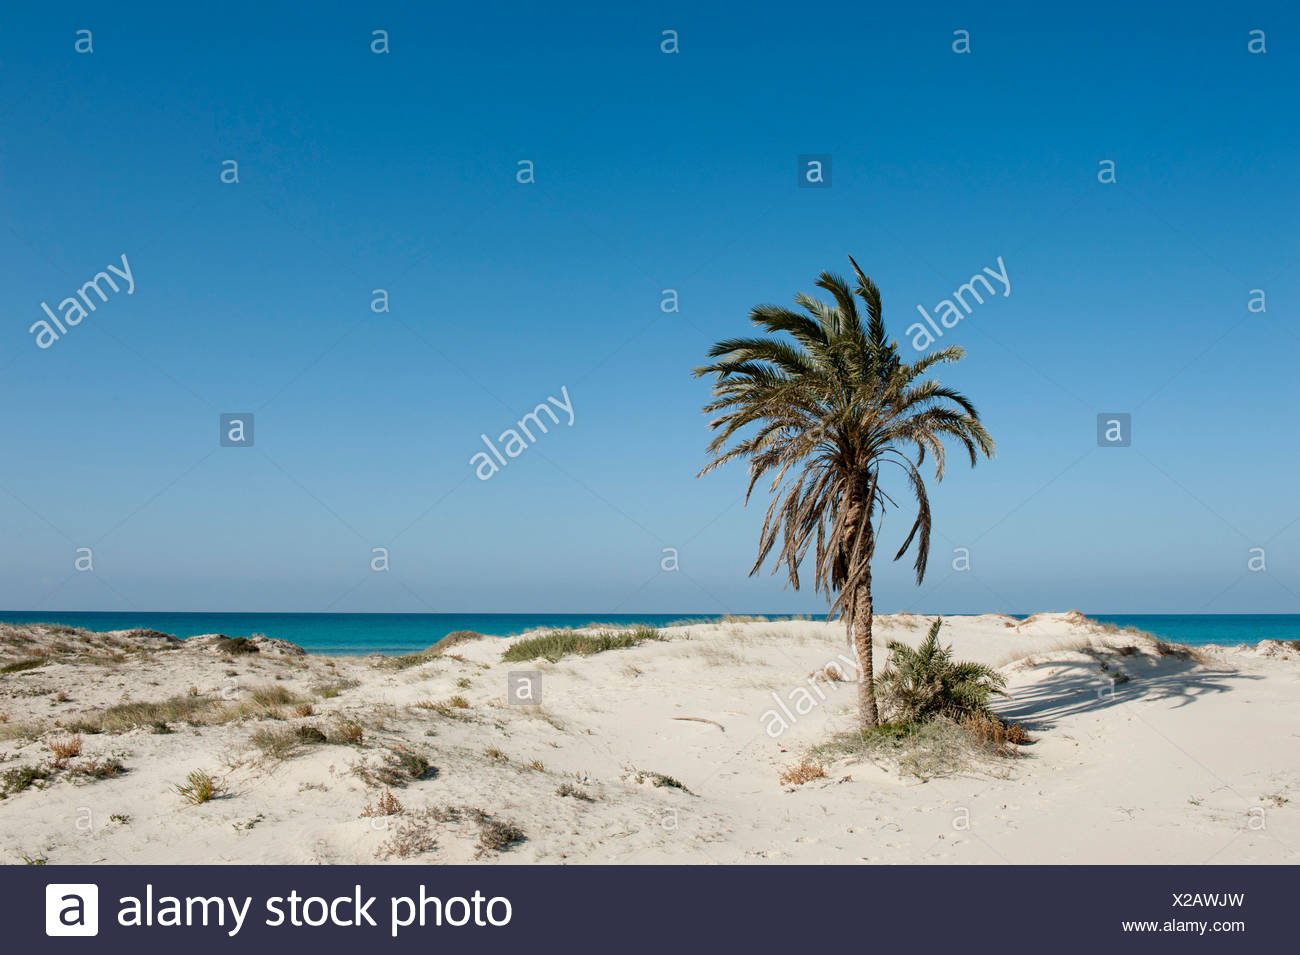 Deserted beach with palms, white sand, island of Djerba, Tunisia, Maghreb, North Africa, Africa - Stock Image